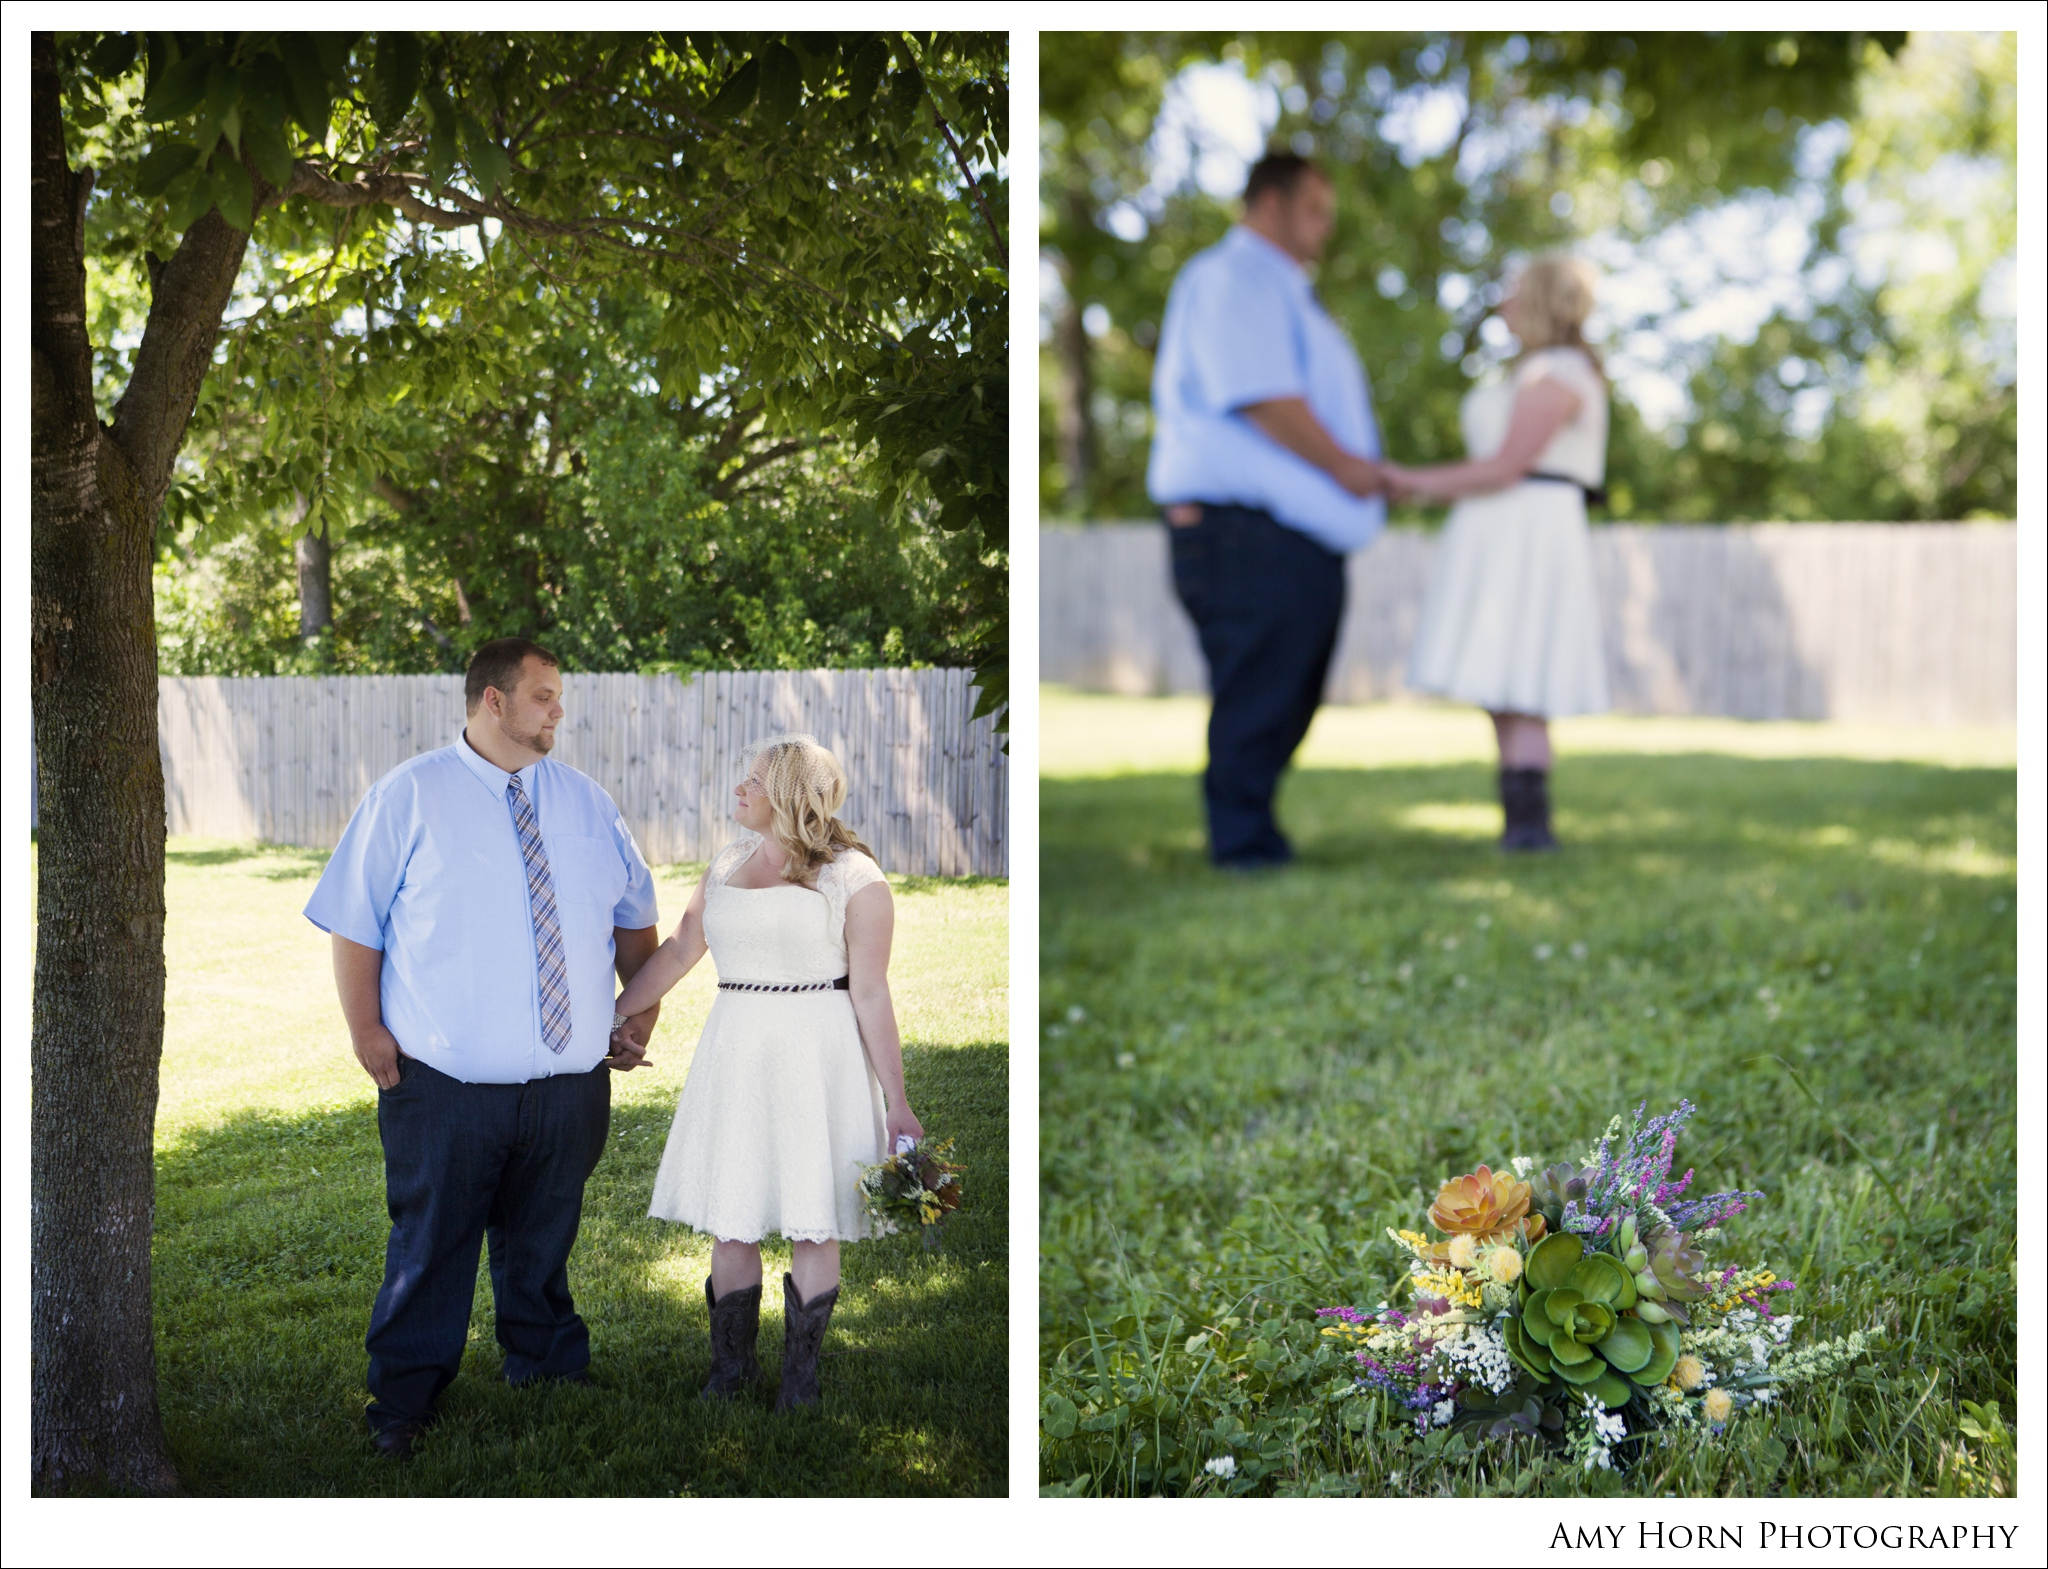 cincinnati wedding photographer, lawrenceburg indiana wedding photographer, aurora indiana engagement, dillsboro indiana, barn wedding, madison indiana wedding, photographer, batesville indiana photographer037.jpg